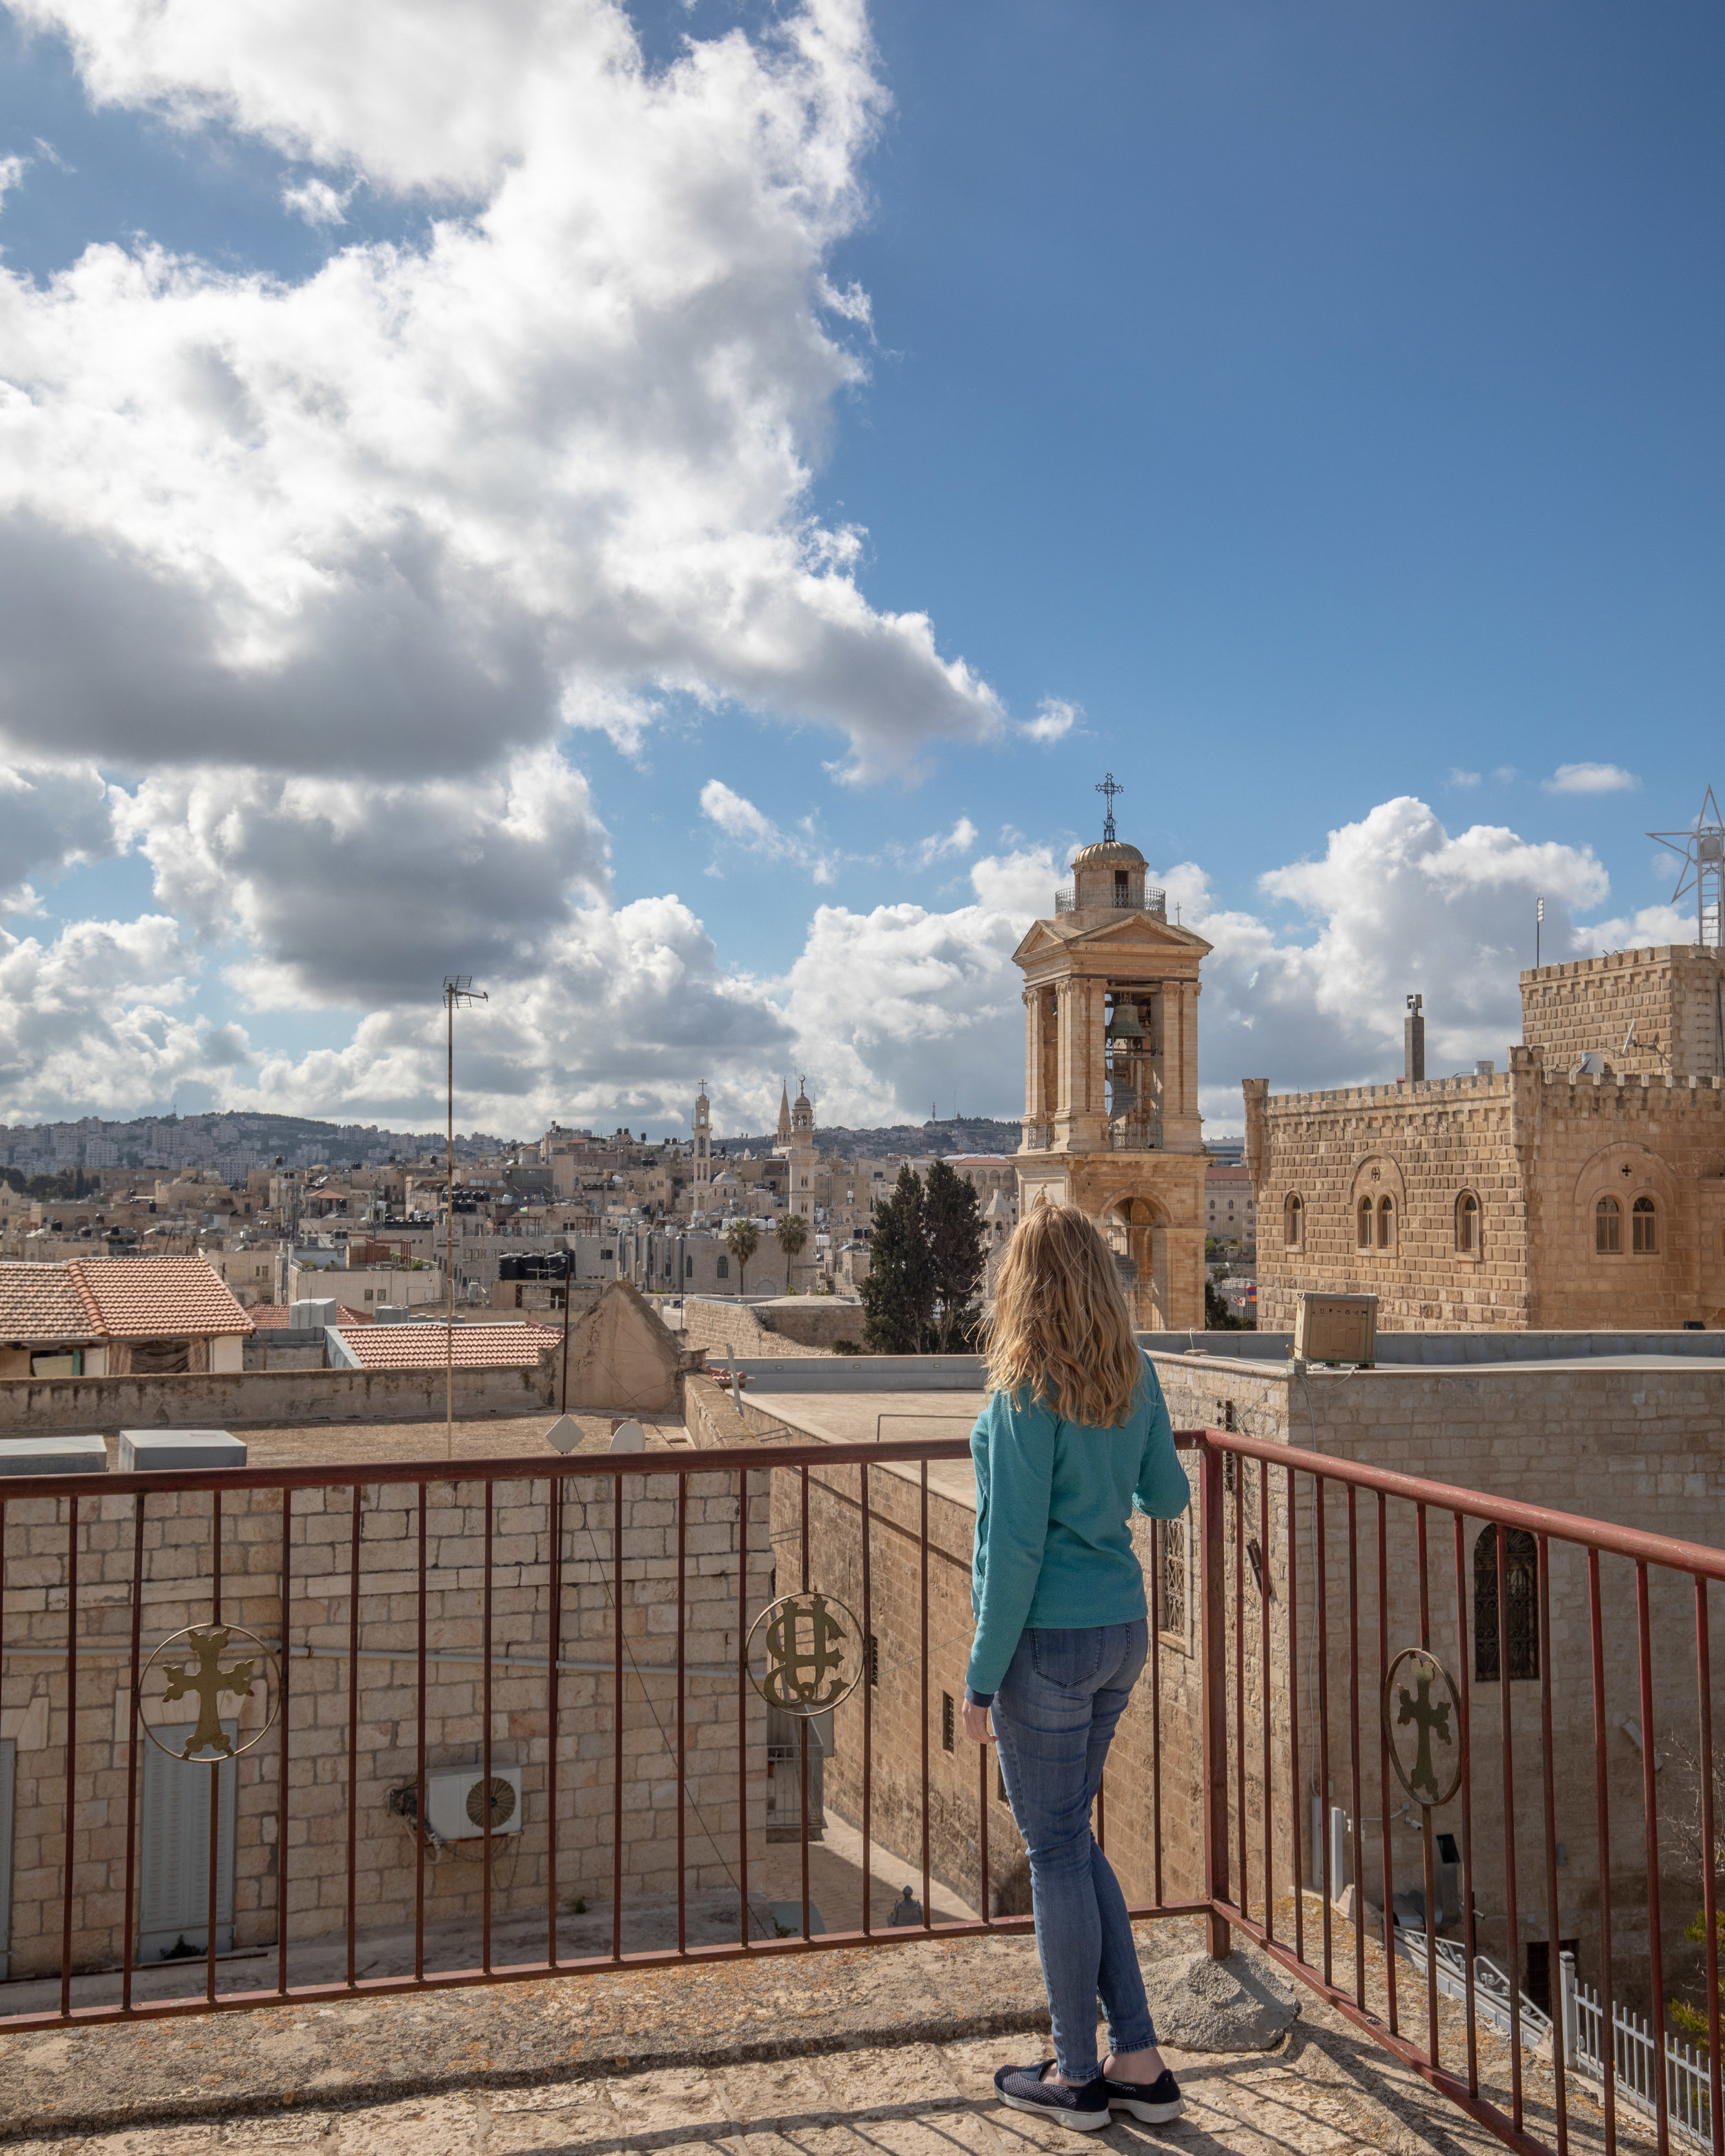 The panoramic view of Bethlehem